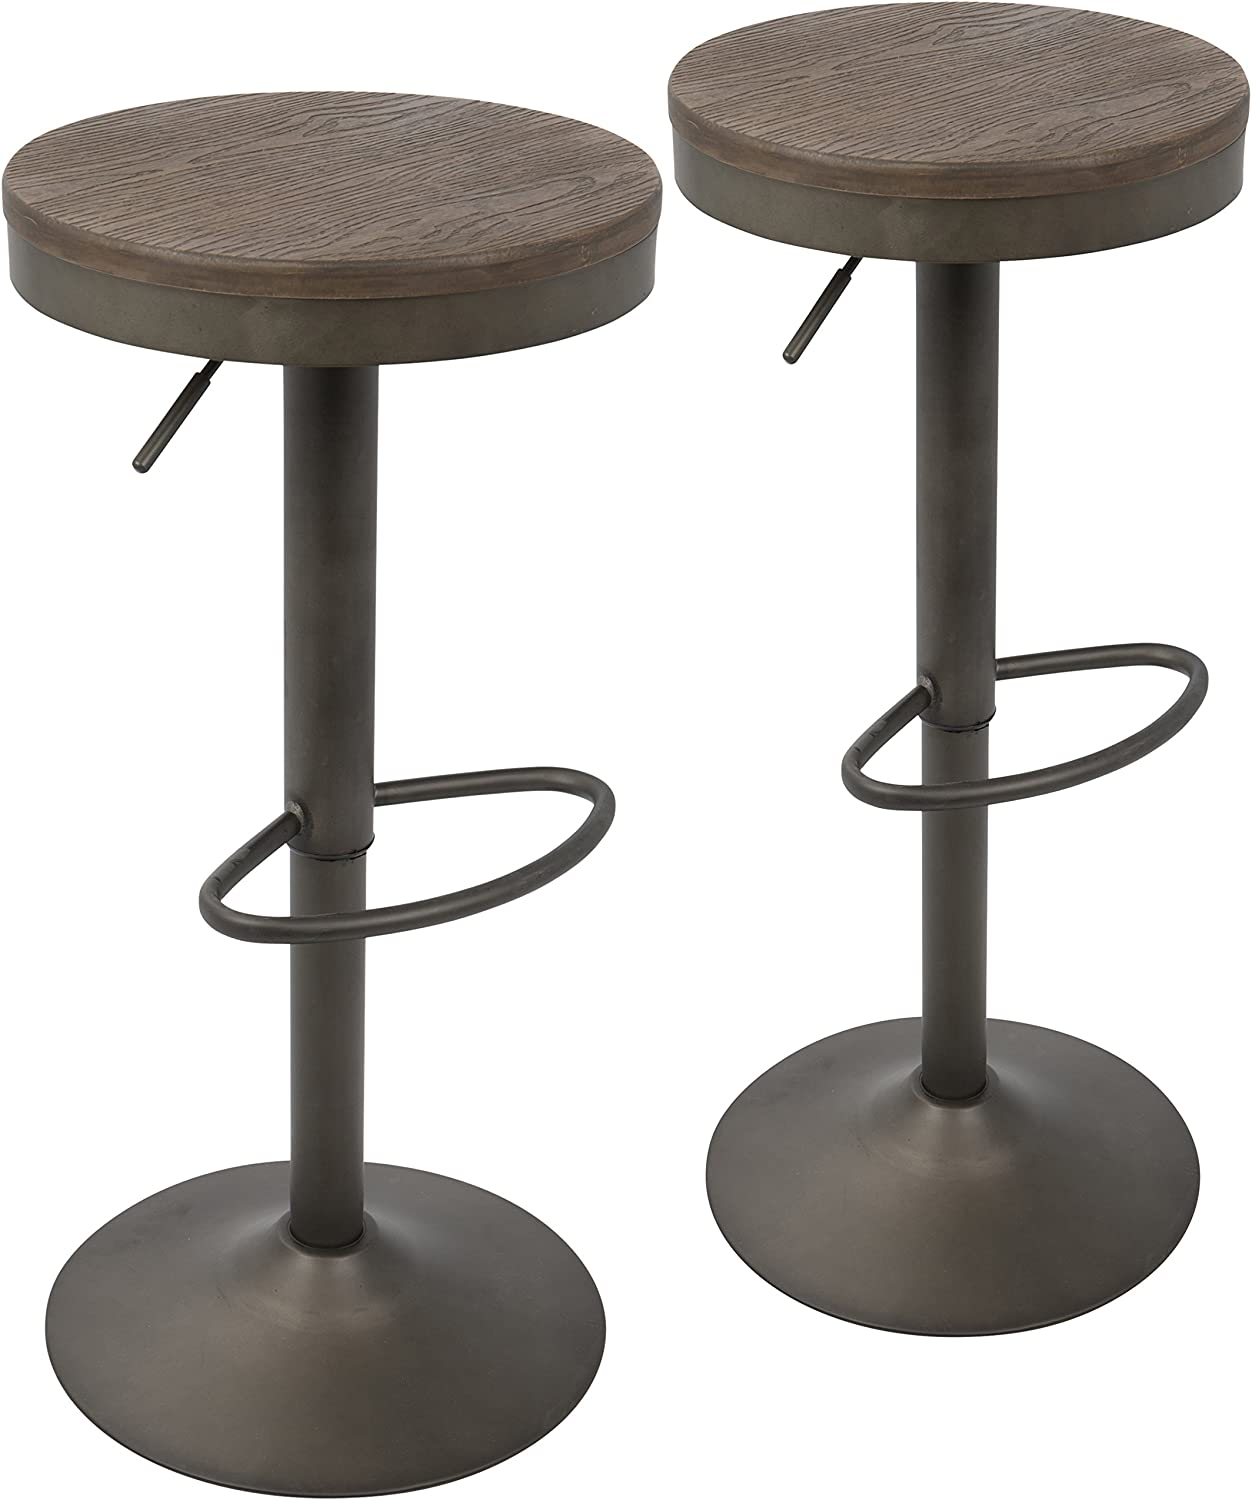 LumiSource Barstool in Antique and Brown – Set of 2